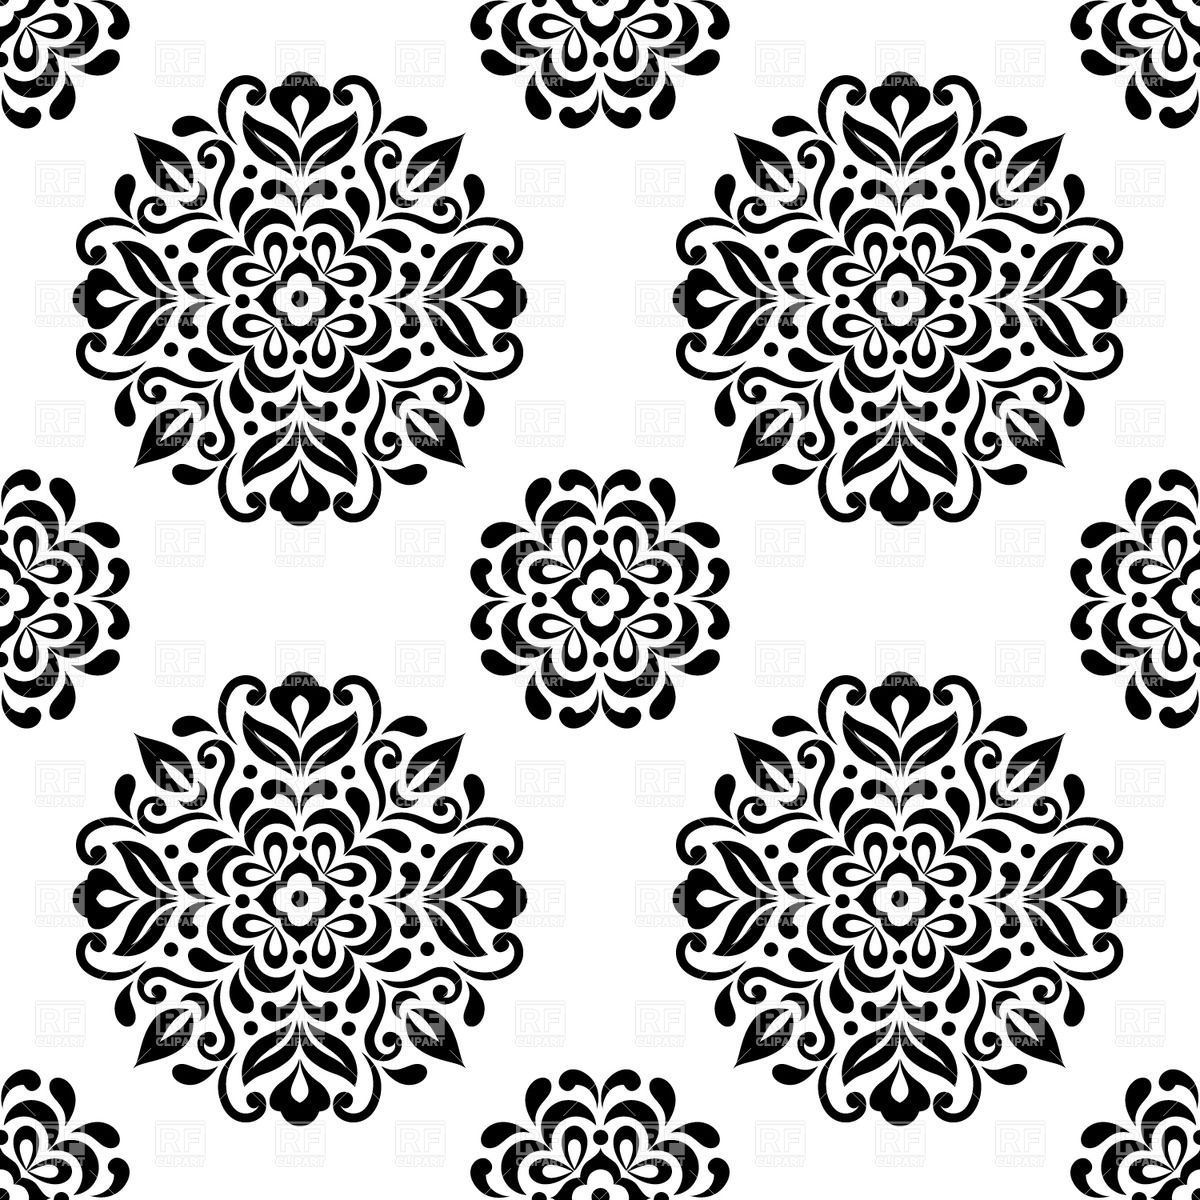 1200x1200 Black And White Seamless Wallpaper With Stylized Round Flowers